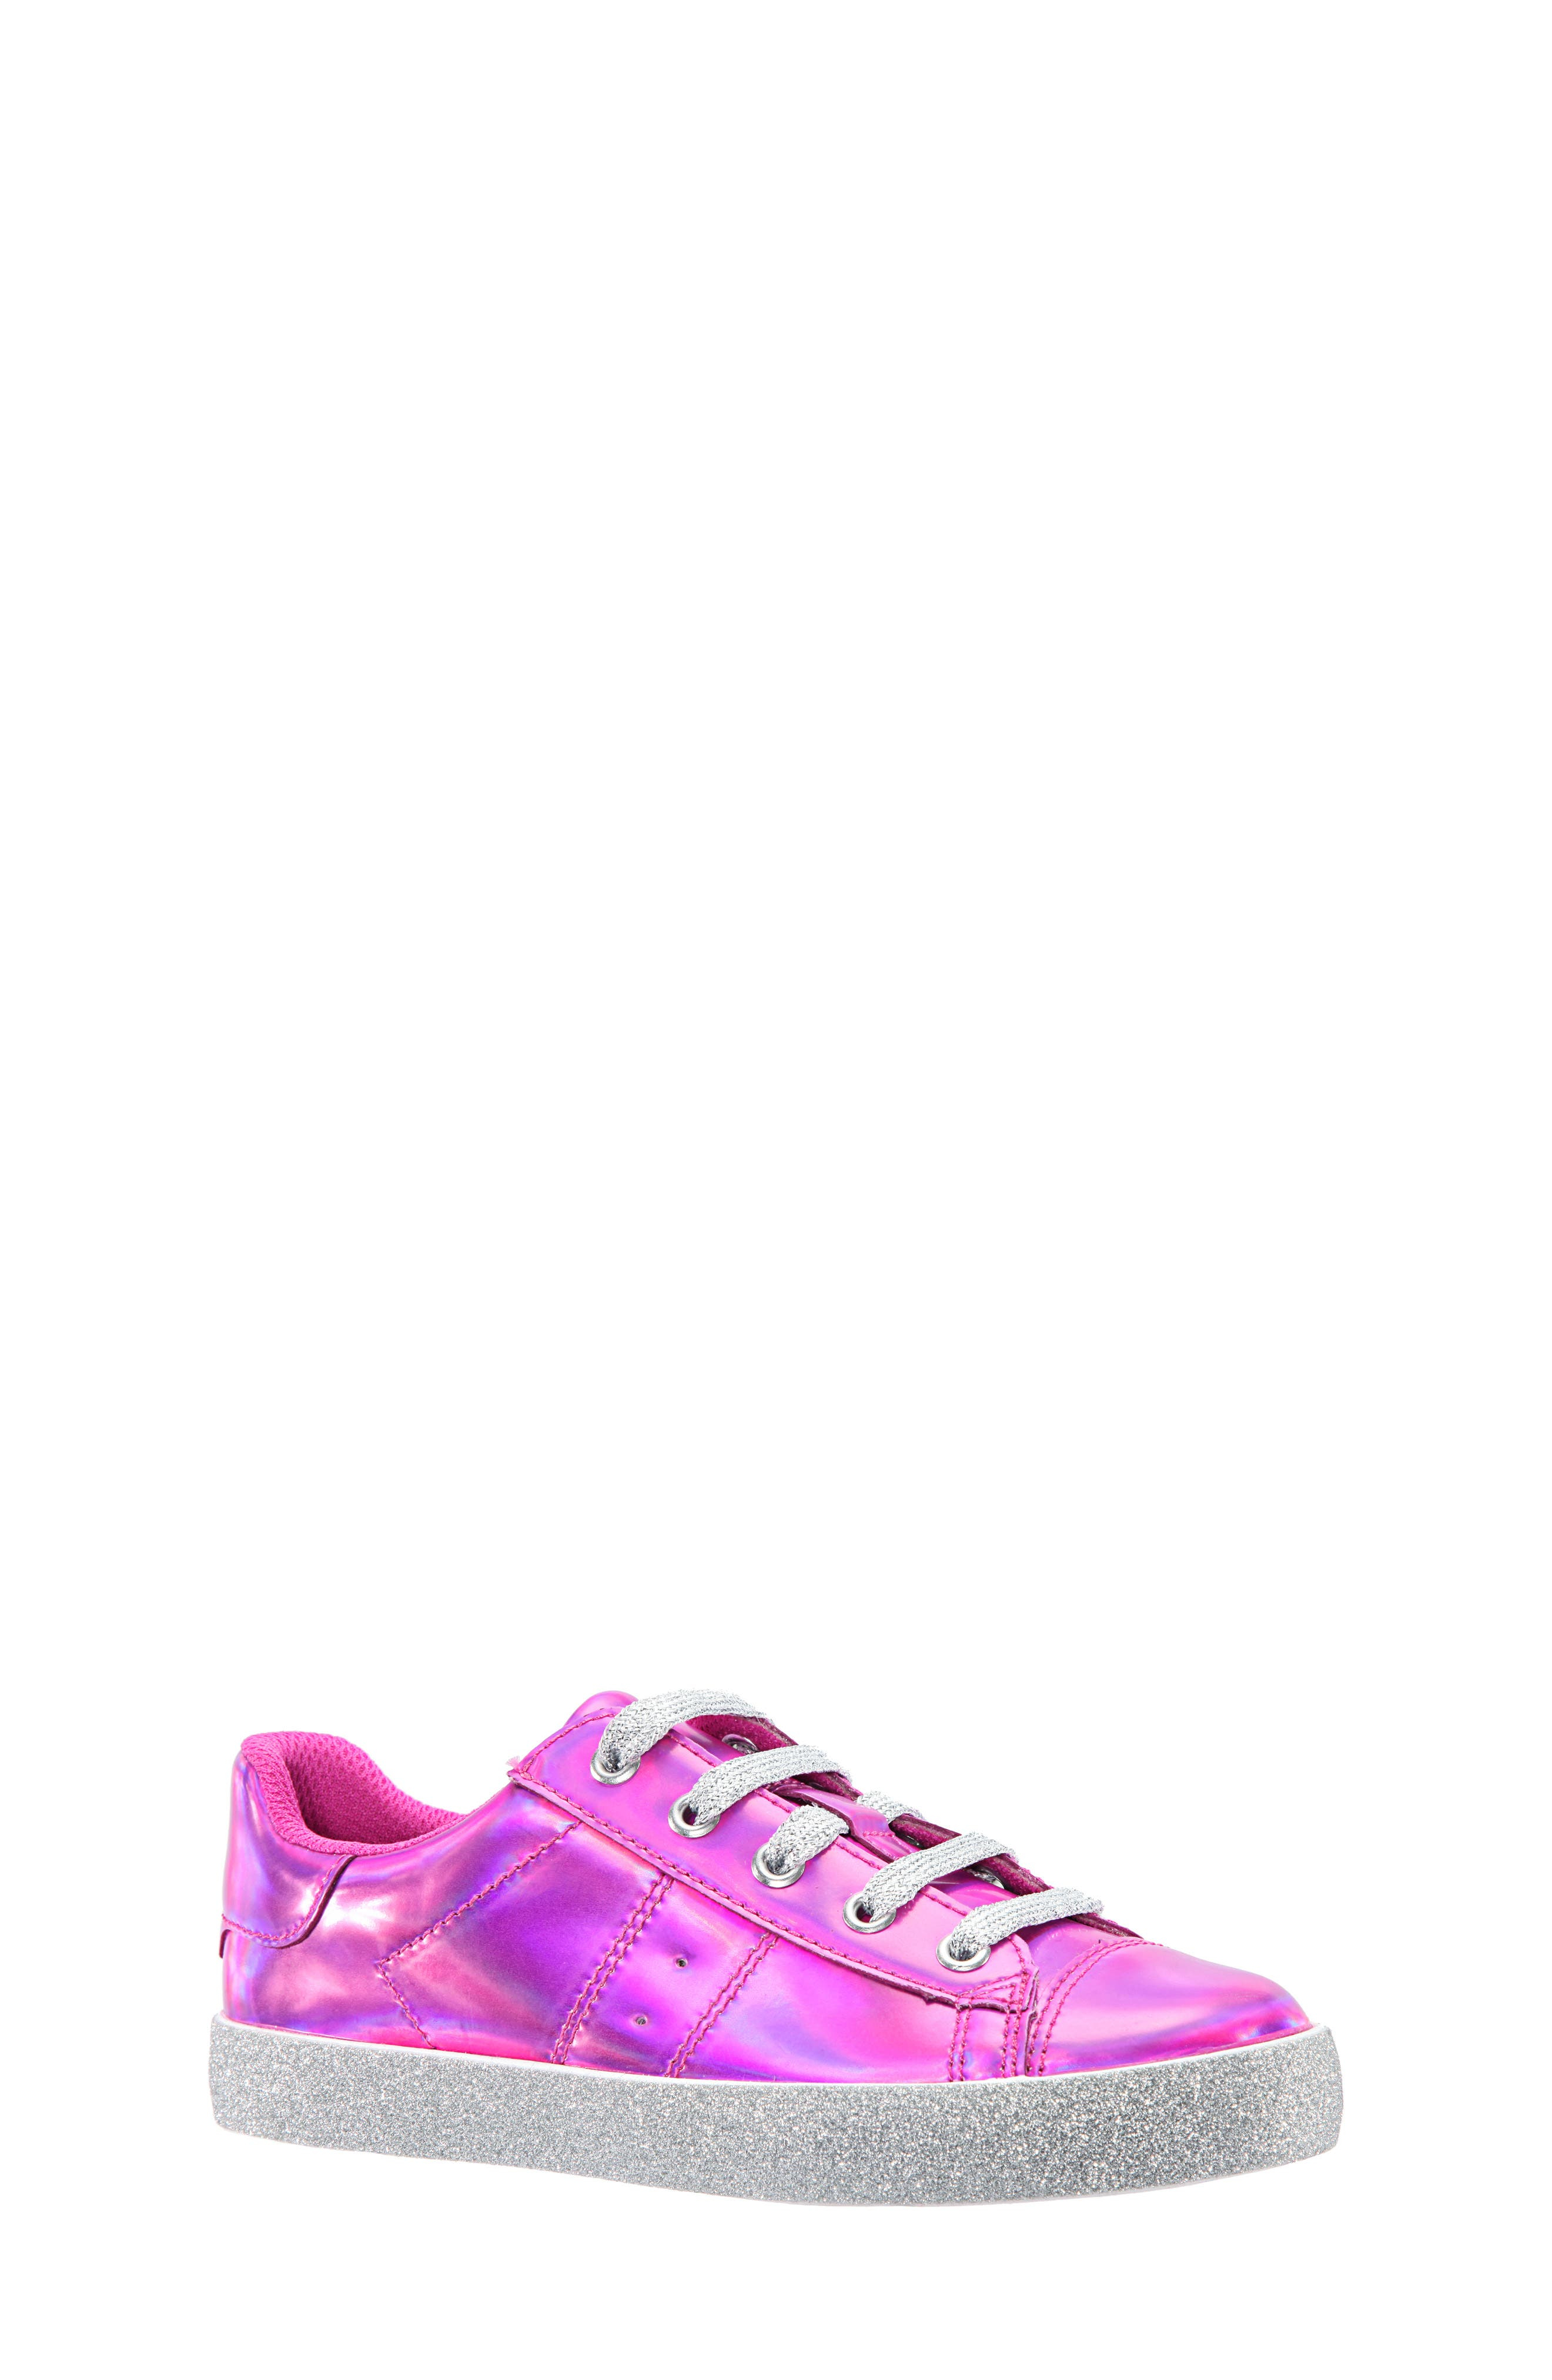 Jovana Glitter Low-Top Sneaker,                         Main,                         color, Pink Patent